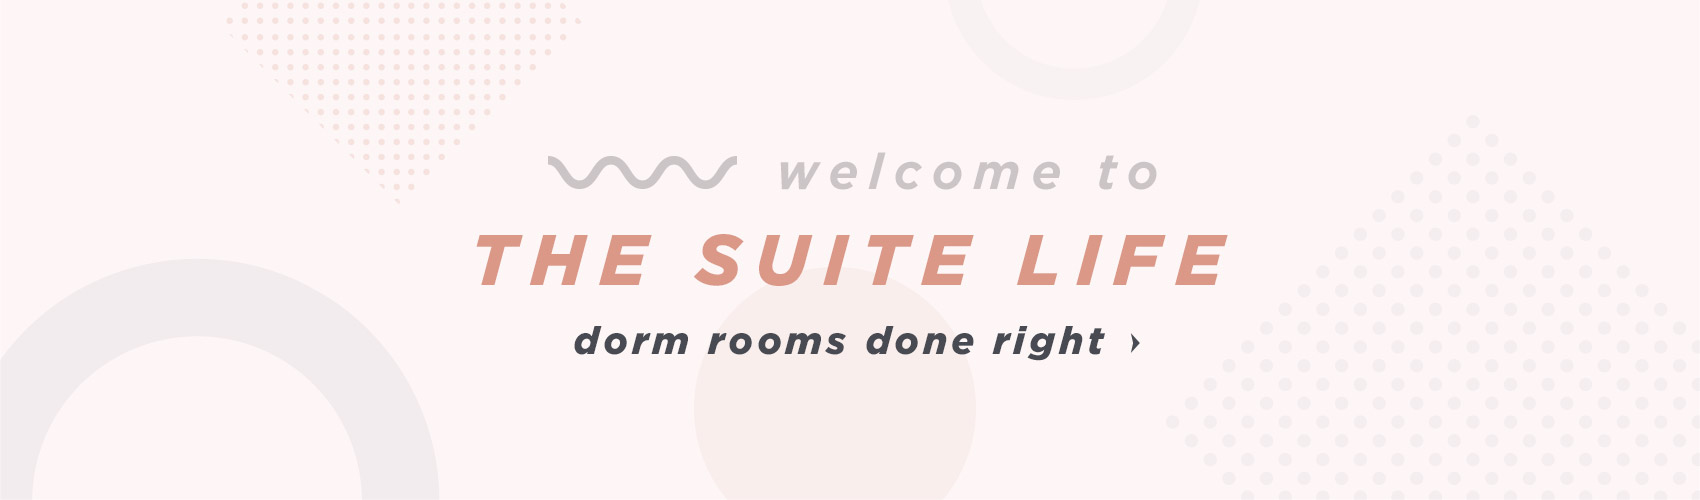 Welcome to the Suite Life on Cstudio Home!